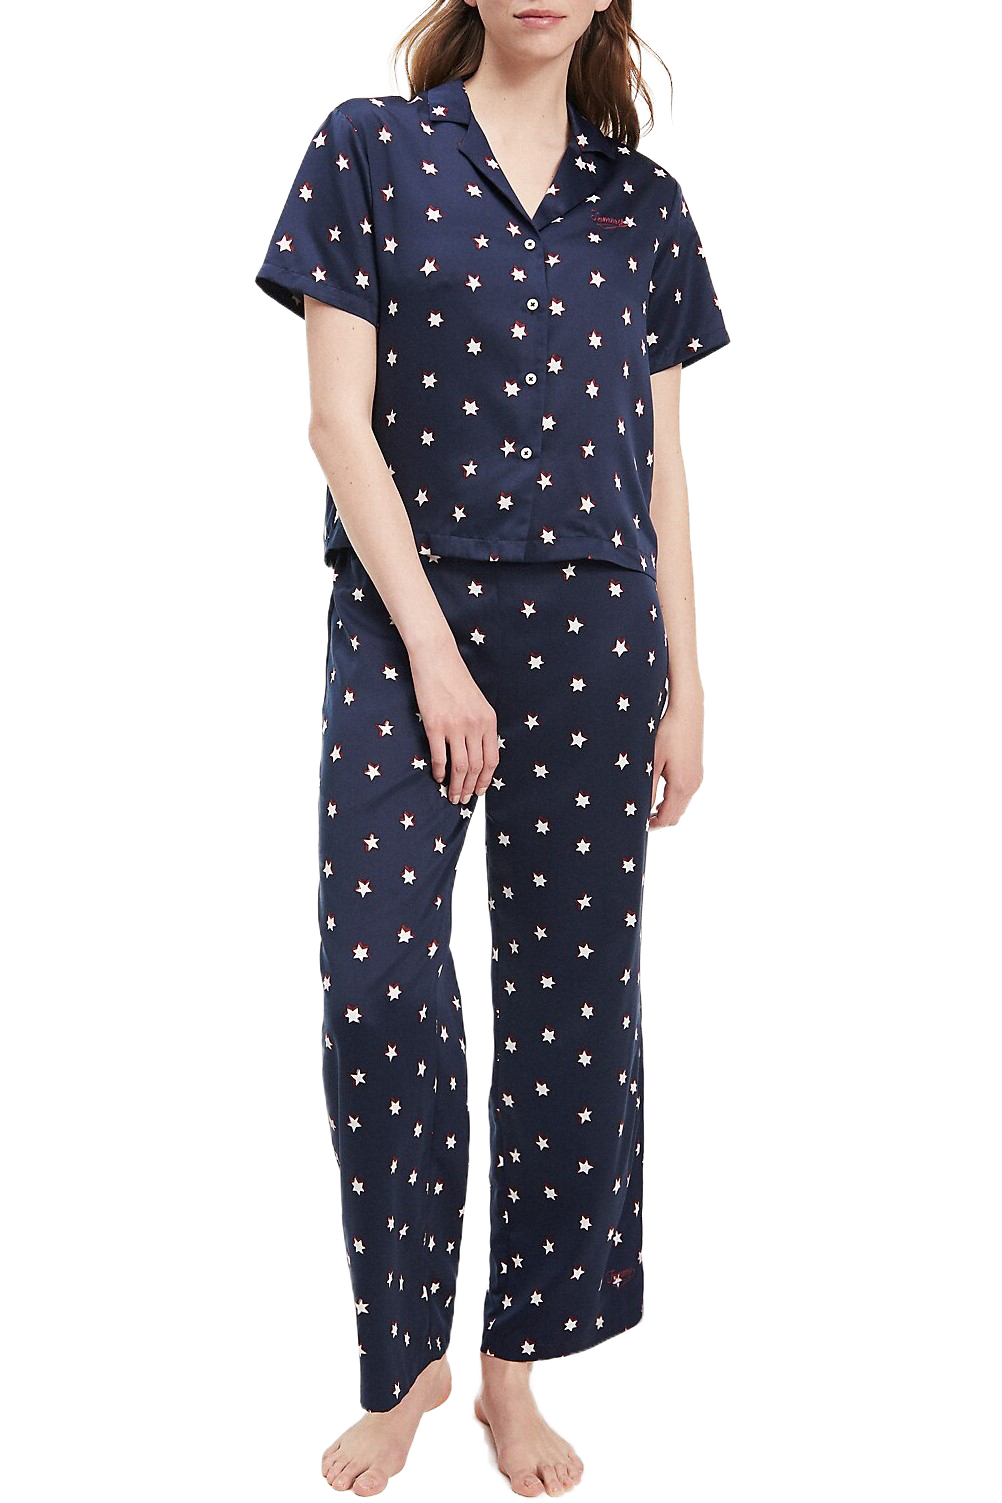 Tommy Hilfiger Dark Blue Pajamas Woven Set S/S Print with Stars